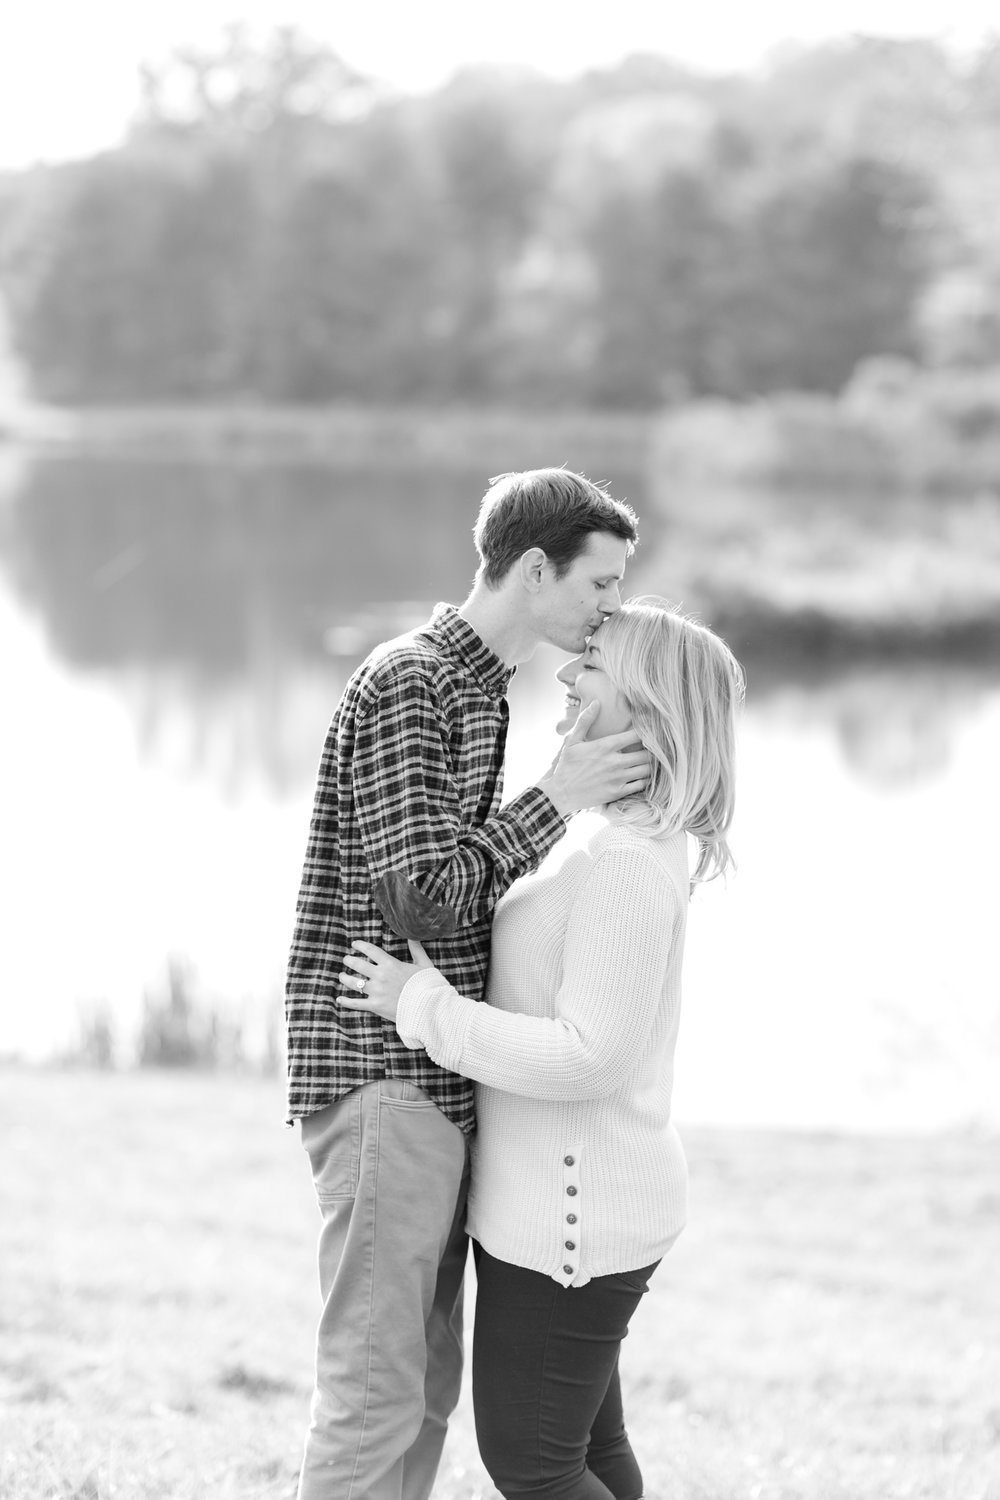 Courtney LaSalle & Taylor Black Engagement-117_larriland-farm-maryland-engagement-photography-anna-grace-photography-photo.jpg